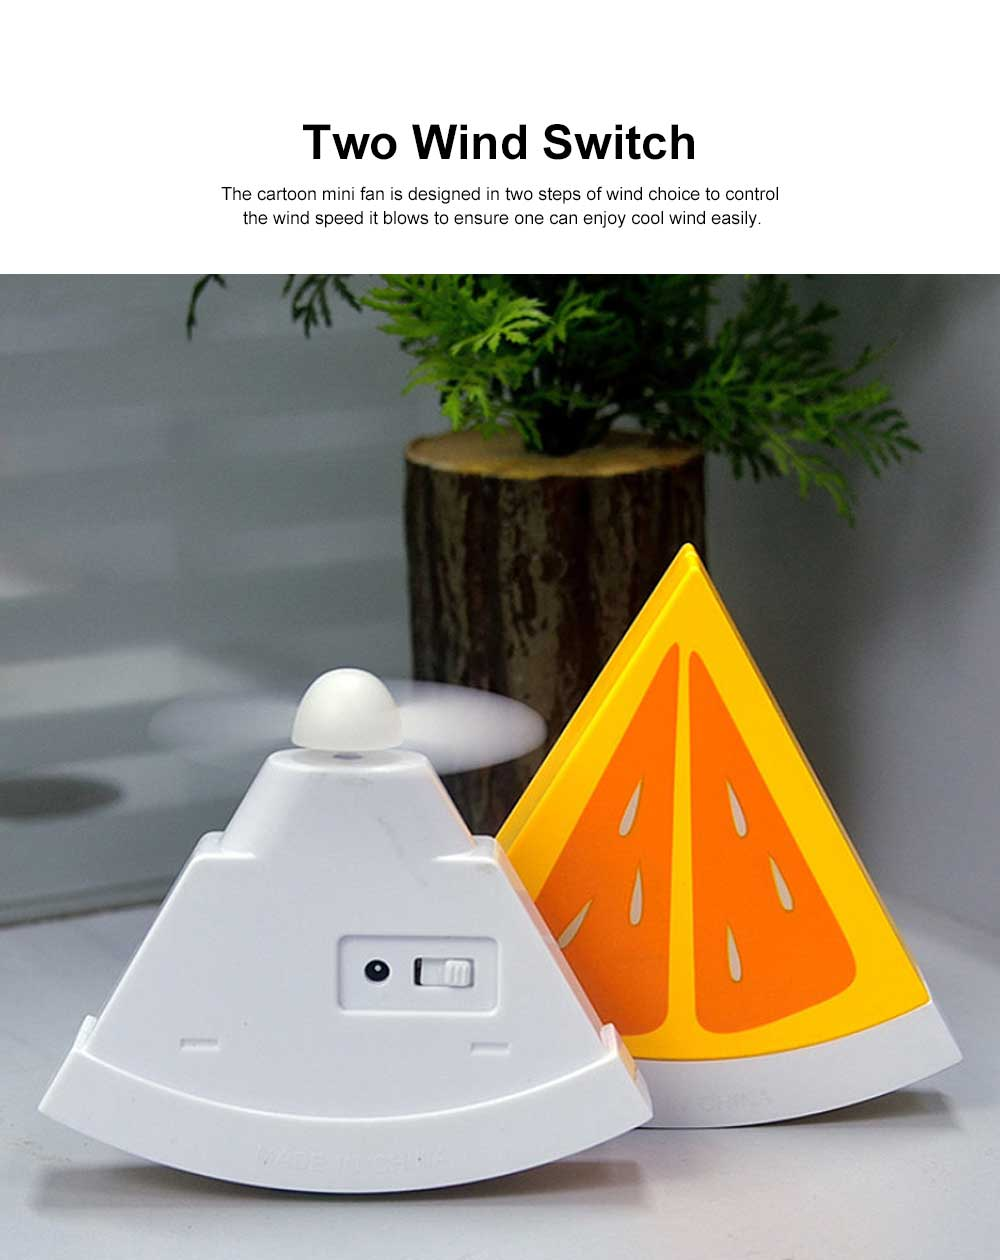 Tinkleo Watermelon USB Chargeable Mini Fan for Children's Gift, Creative Cartoon Portable Air Fan for Baby Present Mini USB Fan 5